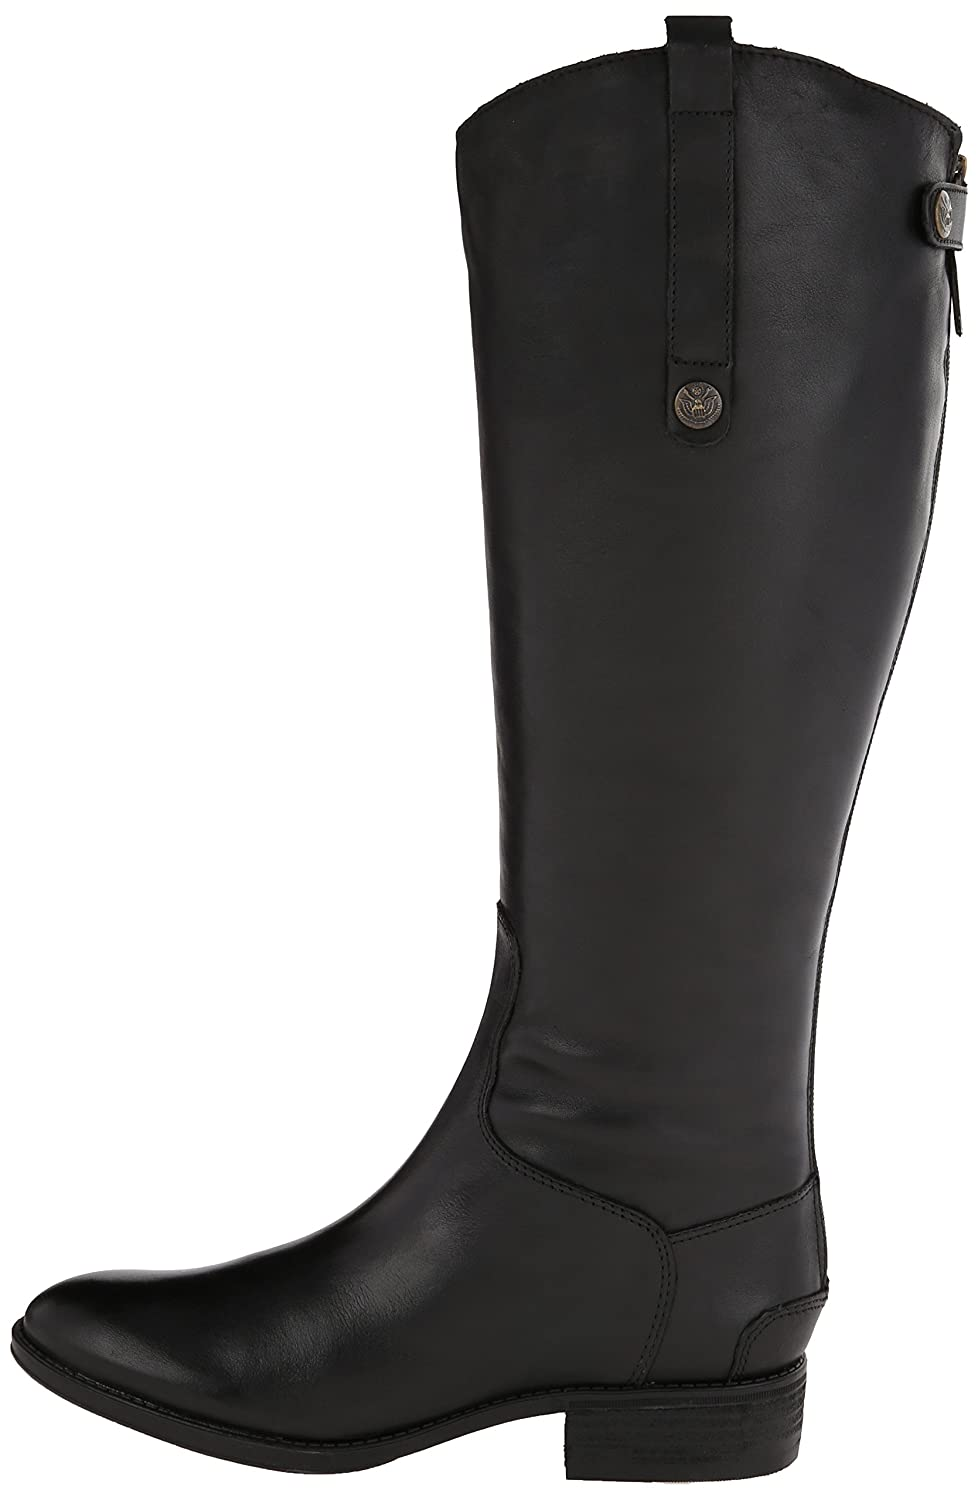 9505c0067 Sam Edelman Women s Penny 2 Wide Shaft Riding Boot  Amazon.ca  Home    Kitchen